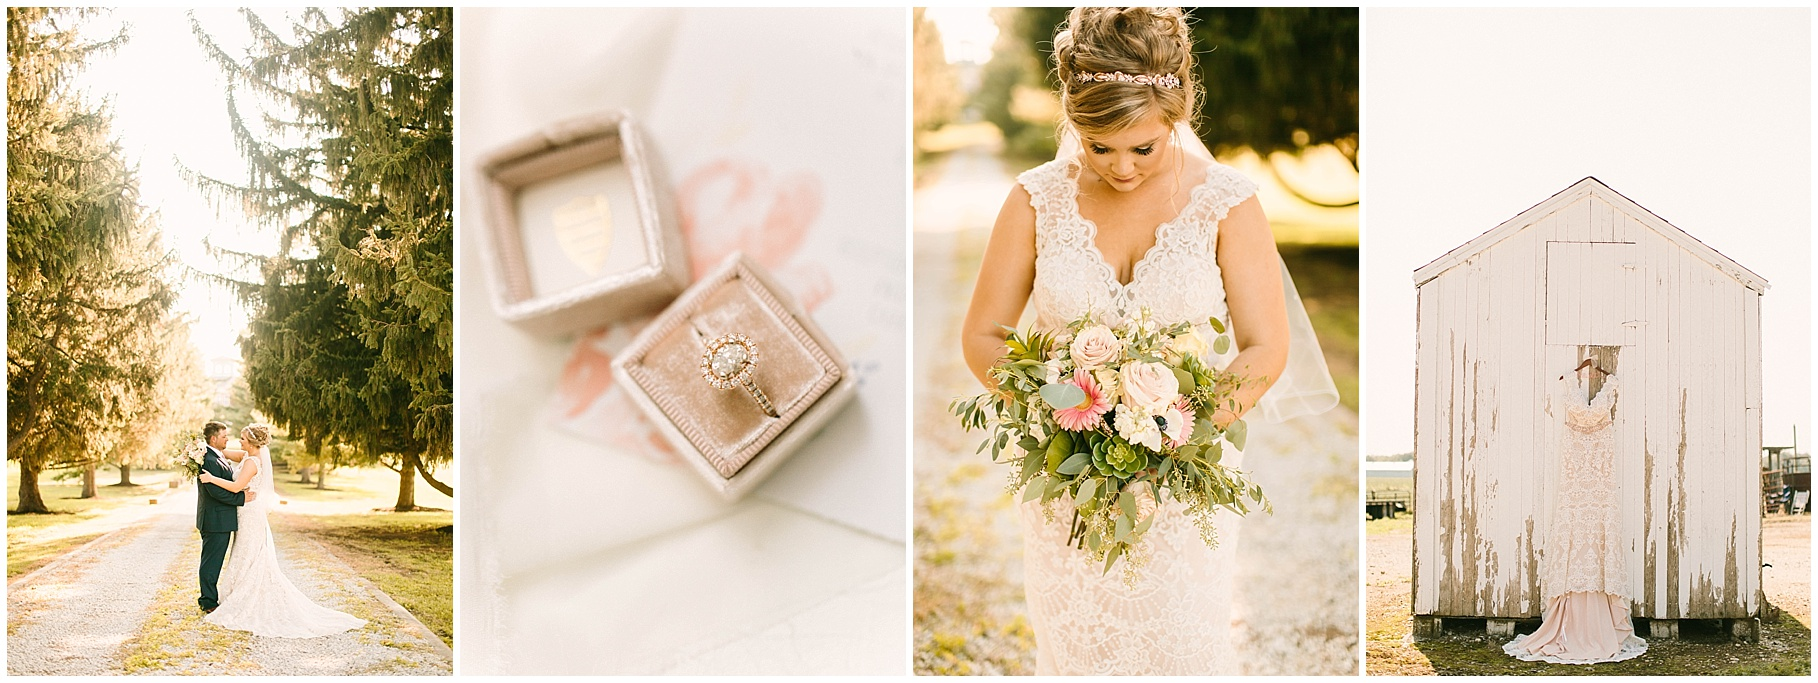 Veronica Young Photography, Country wedding